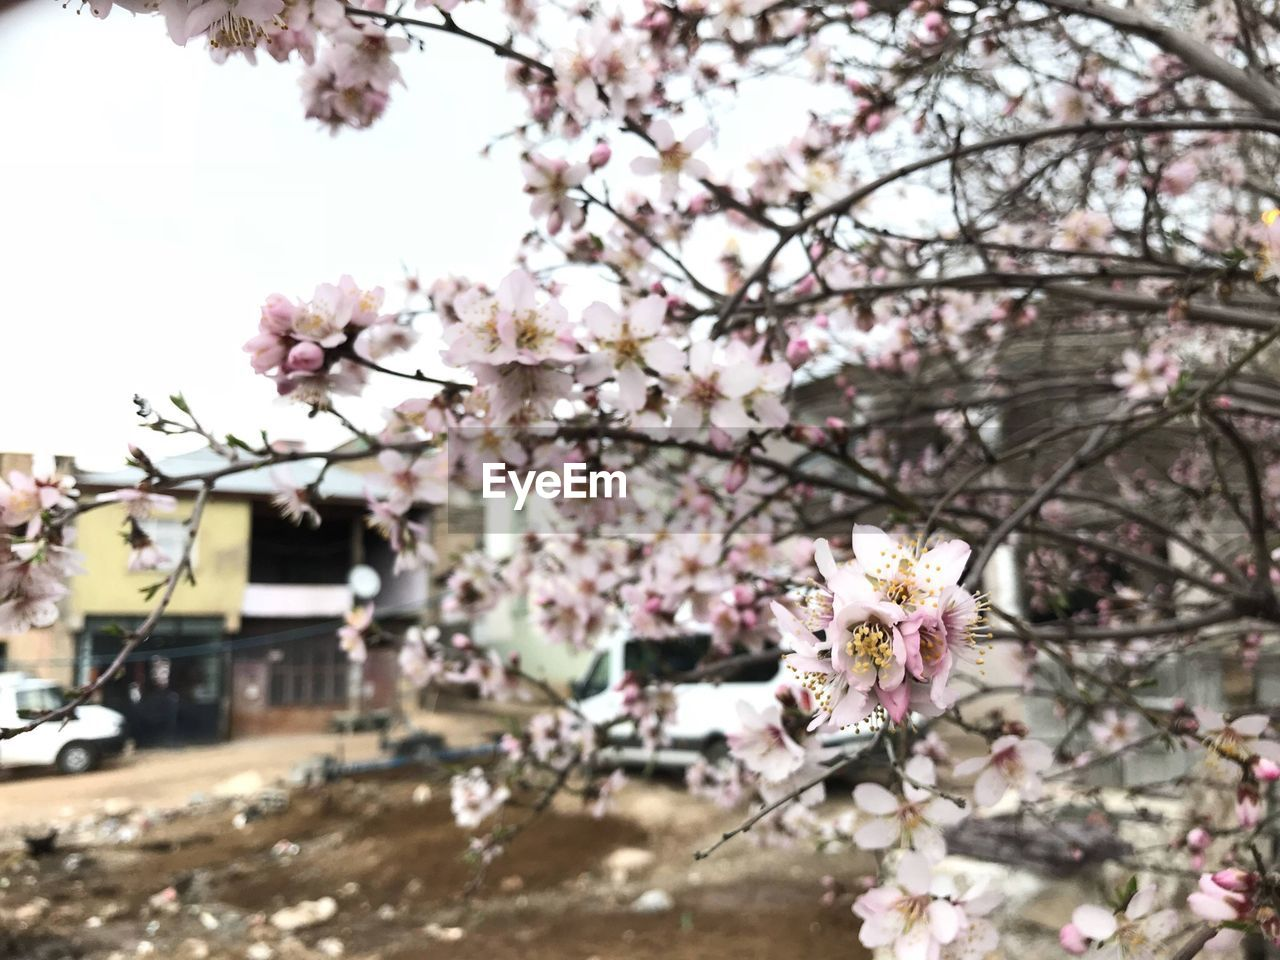 flowering plant, flower, plant, tree, fragility, springtime, blossom, growth, beauty in nature, vulnerability, nature, freshness, branch, cherry blossom, day, focus on foreground, pink color, cherry tree, building exterior, architecture, no people, outdoors, flower head